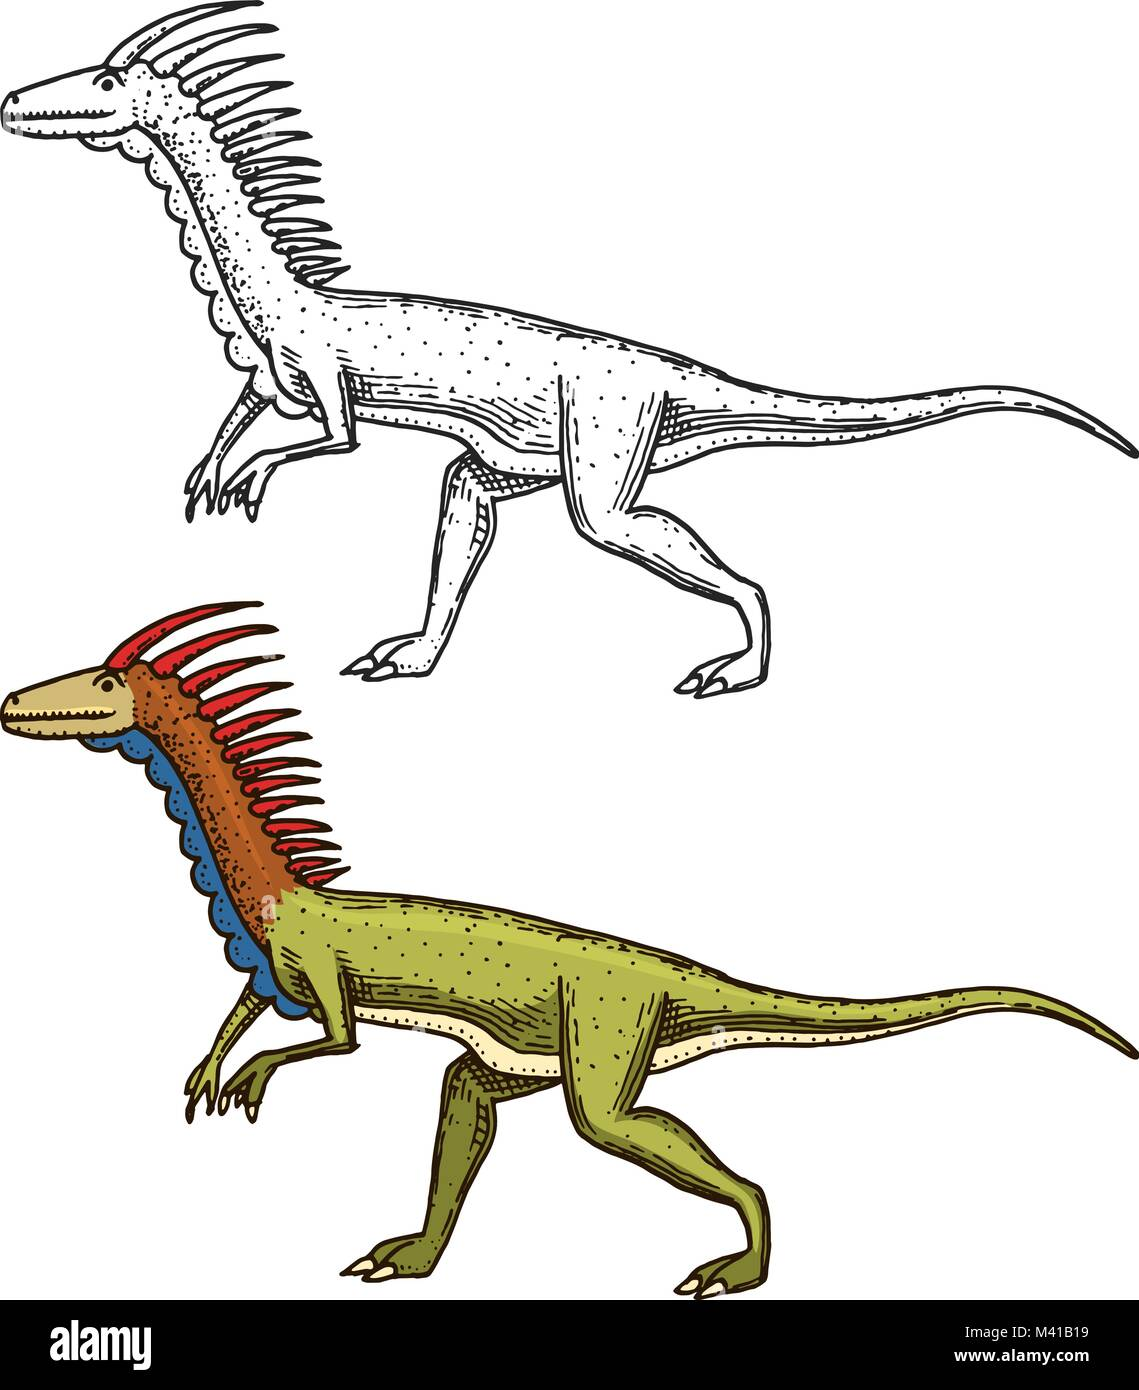 Dinosaurs deinonychus, skeletons, fossils. Prehistoric reptiles, Animal. engraved hand drawn in old sketch. - Stock Image